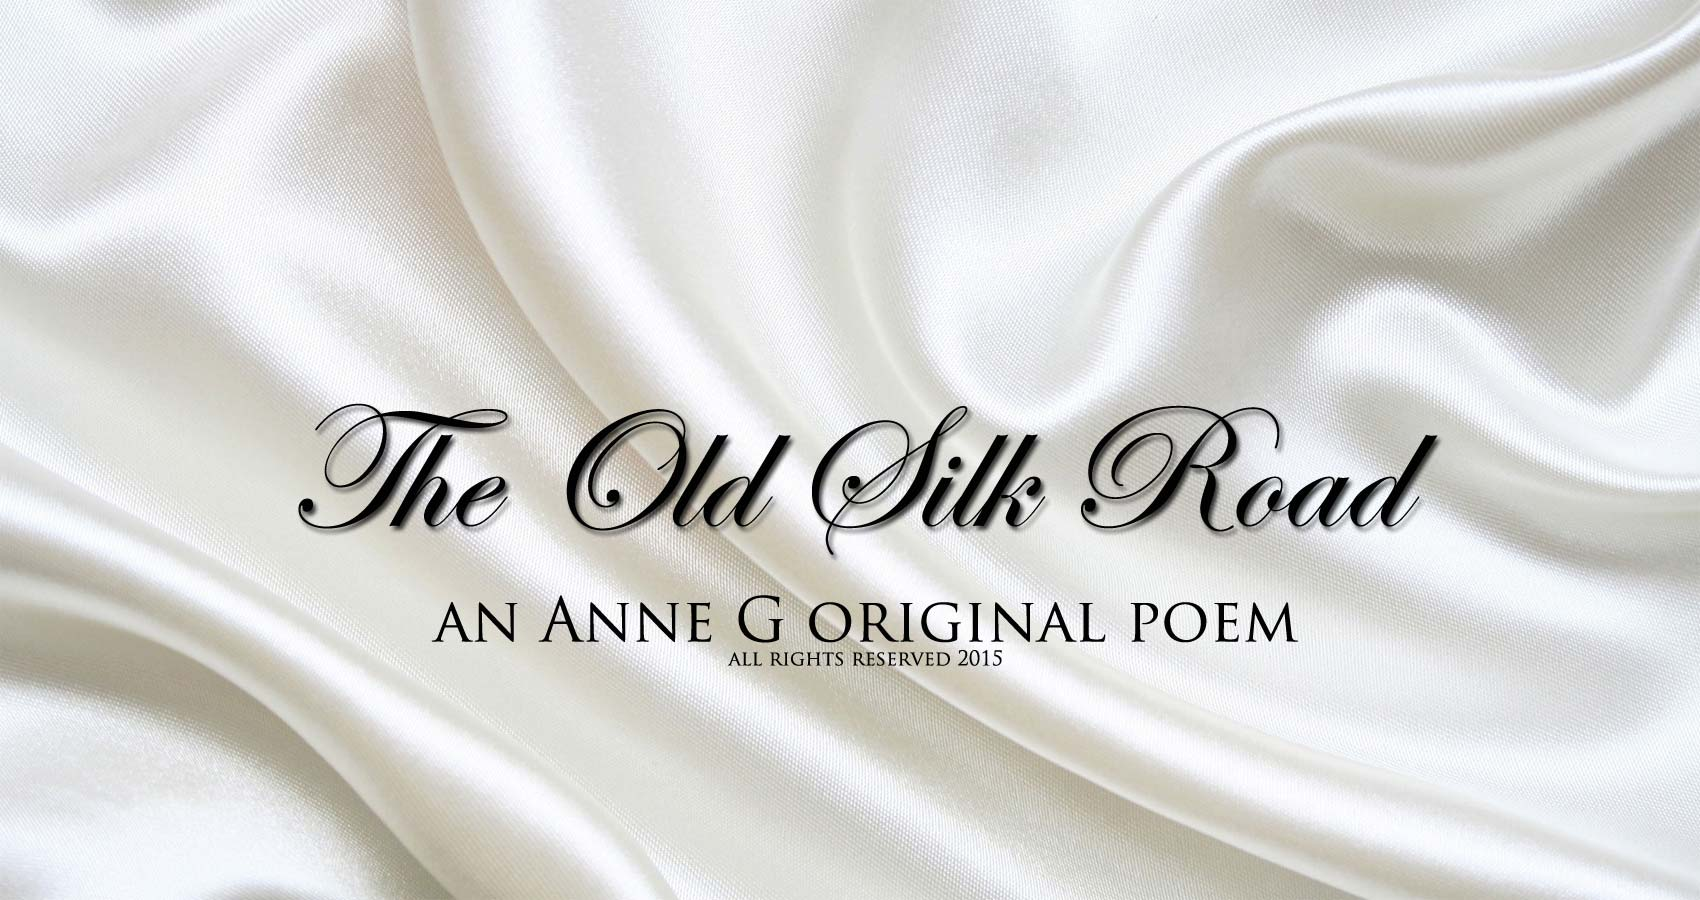 The Old Silk Road at spillwords.com by Anne G